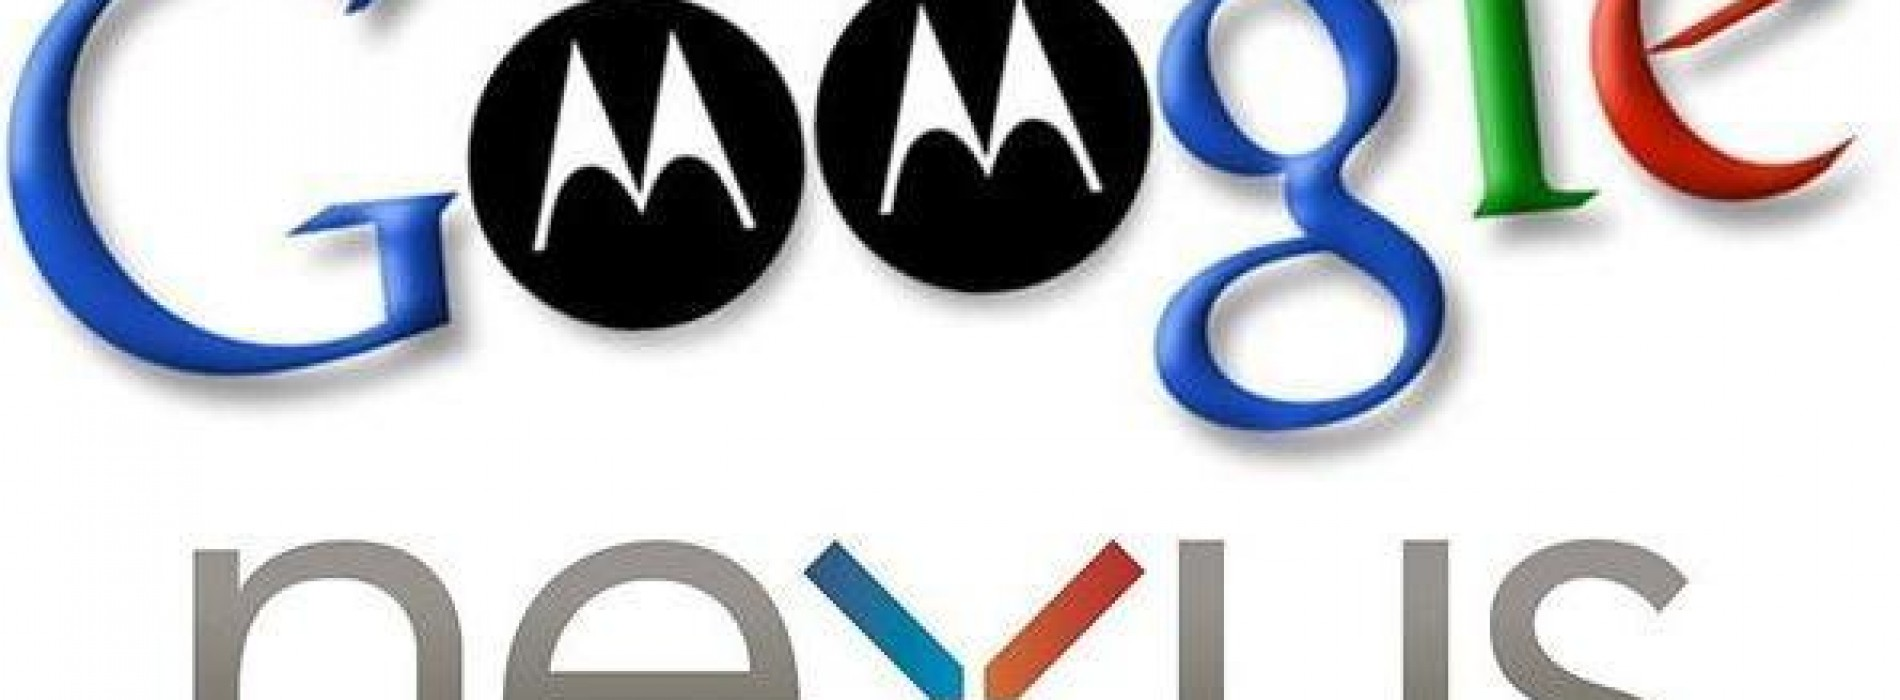 Upcoming Nexus device to be made by Motorola?